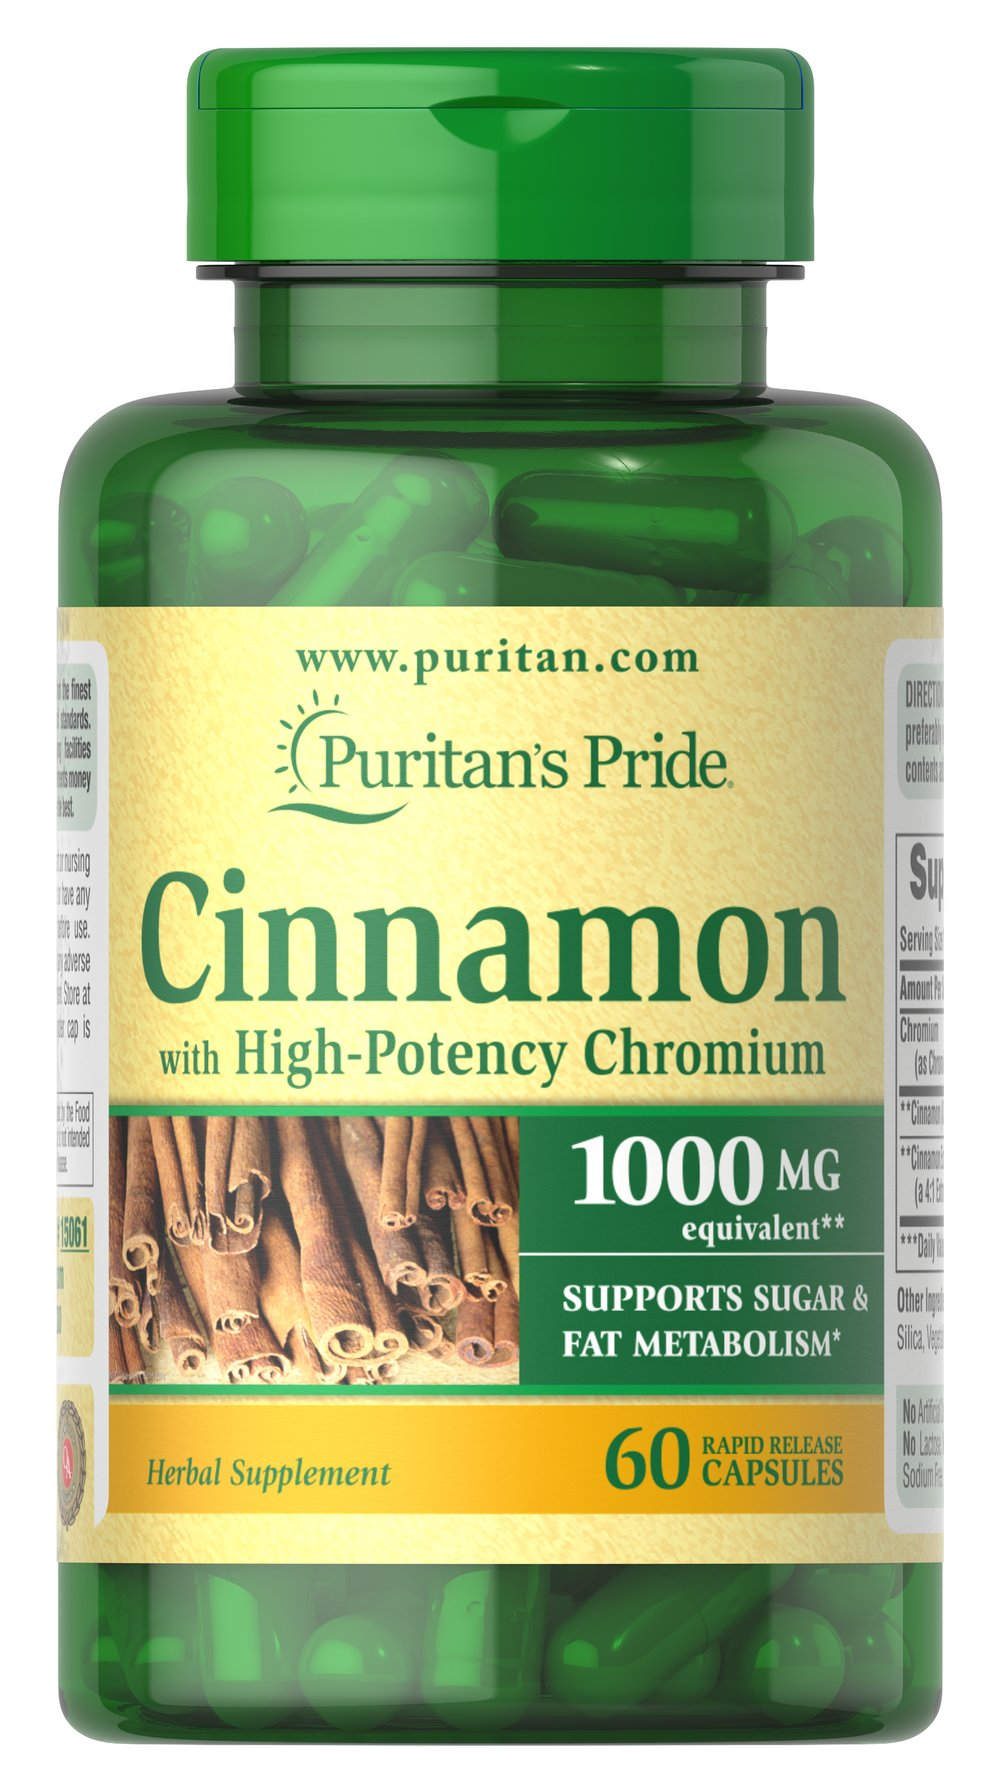 Cinnamon Complex with High Potency Chromium  60 Capsules 1000 mg $14.40